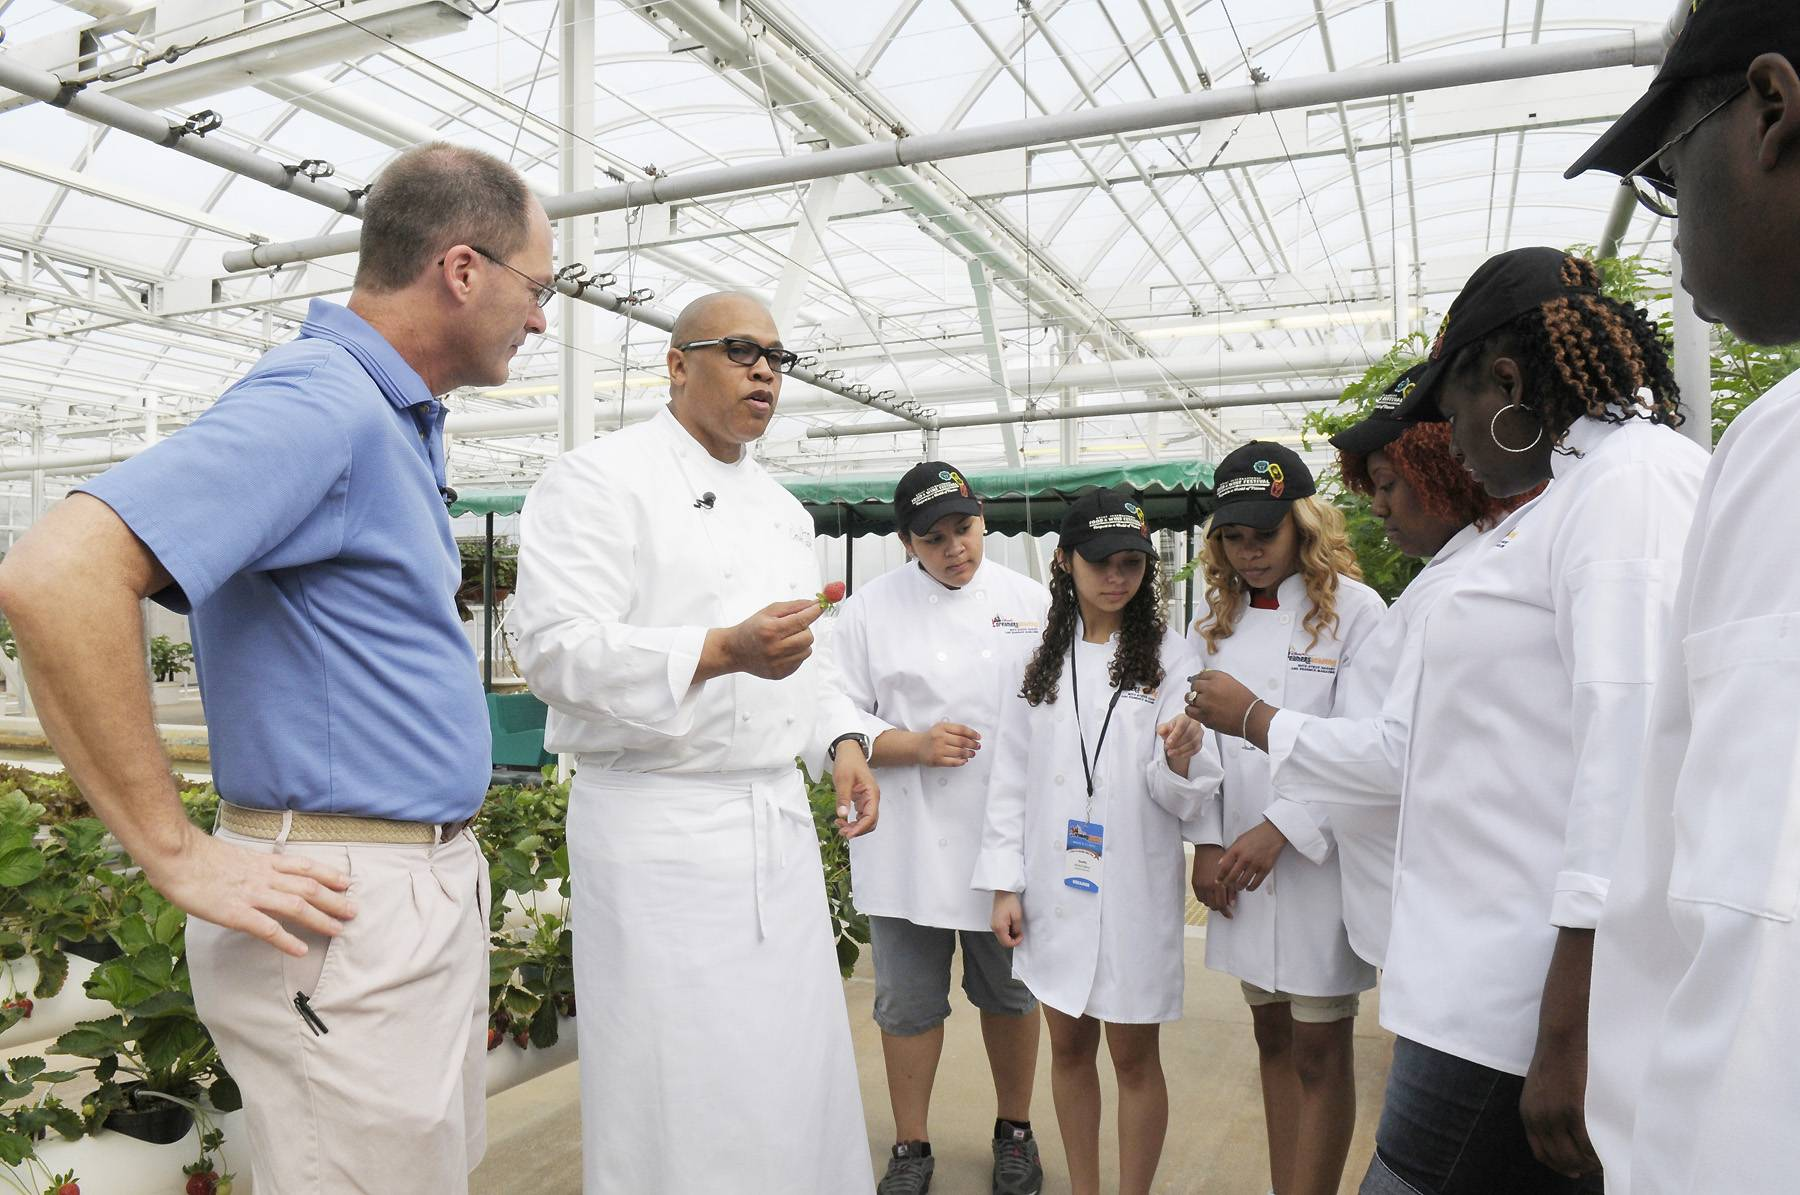 Recipe for Success - Celebrity chef Jeff Henderson explained the value of fresh herbs and vegetables in every meal to the students. Dreamers then joined Henderson in the kitchen and prepared a healthy meal for their fellow students on March 9. (Photo: Phelan Ebenhack)